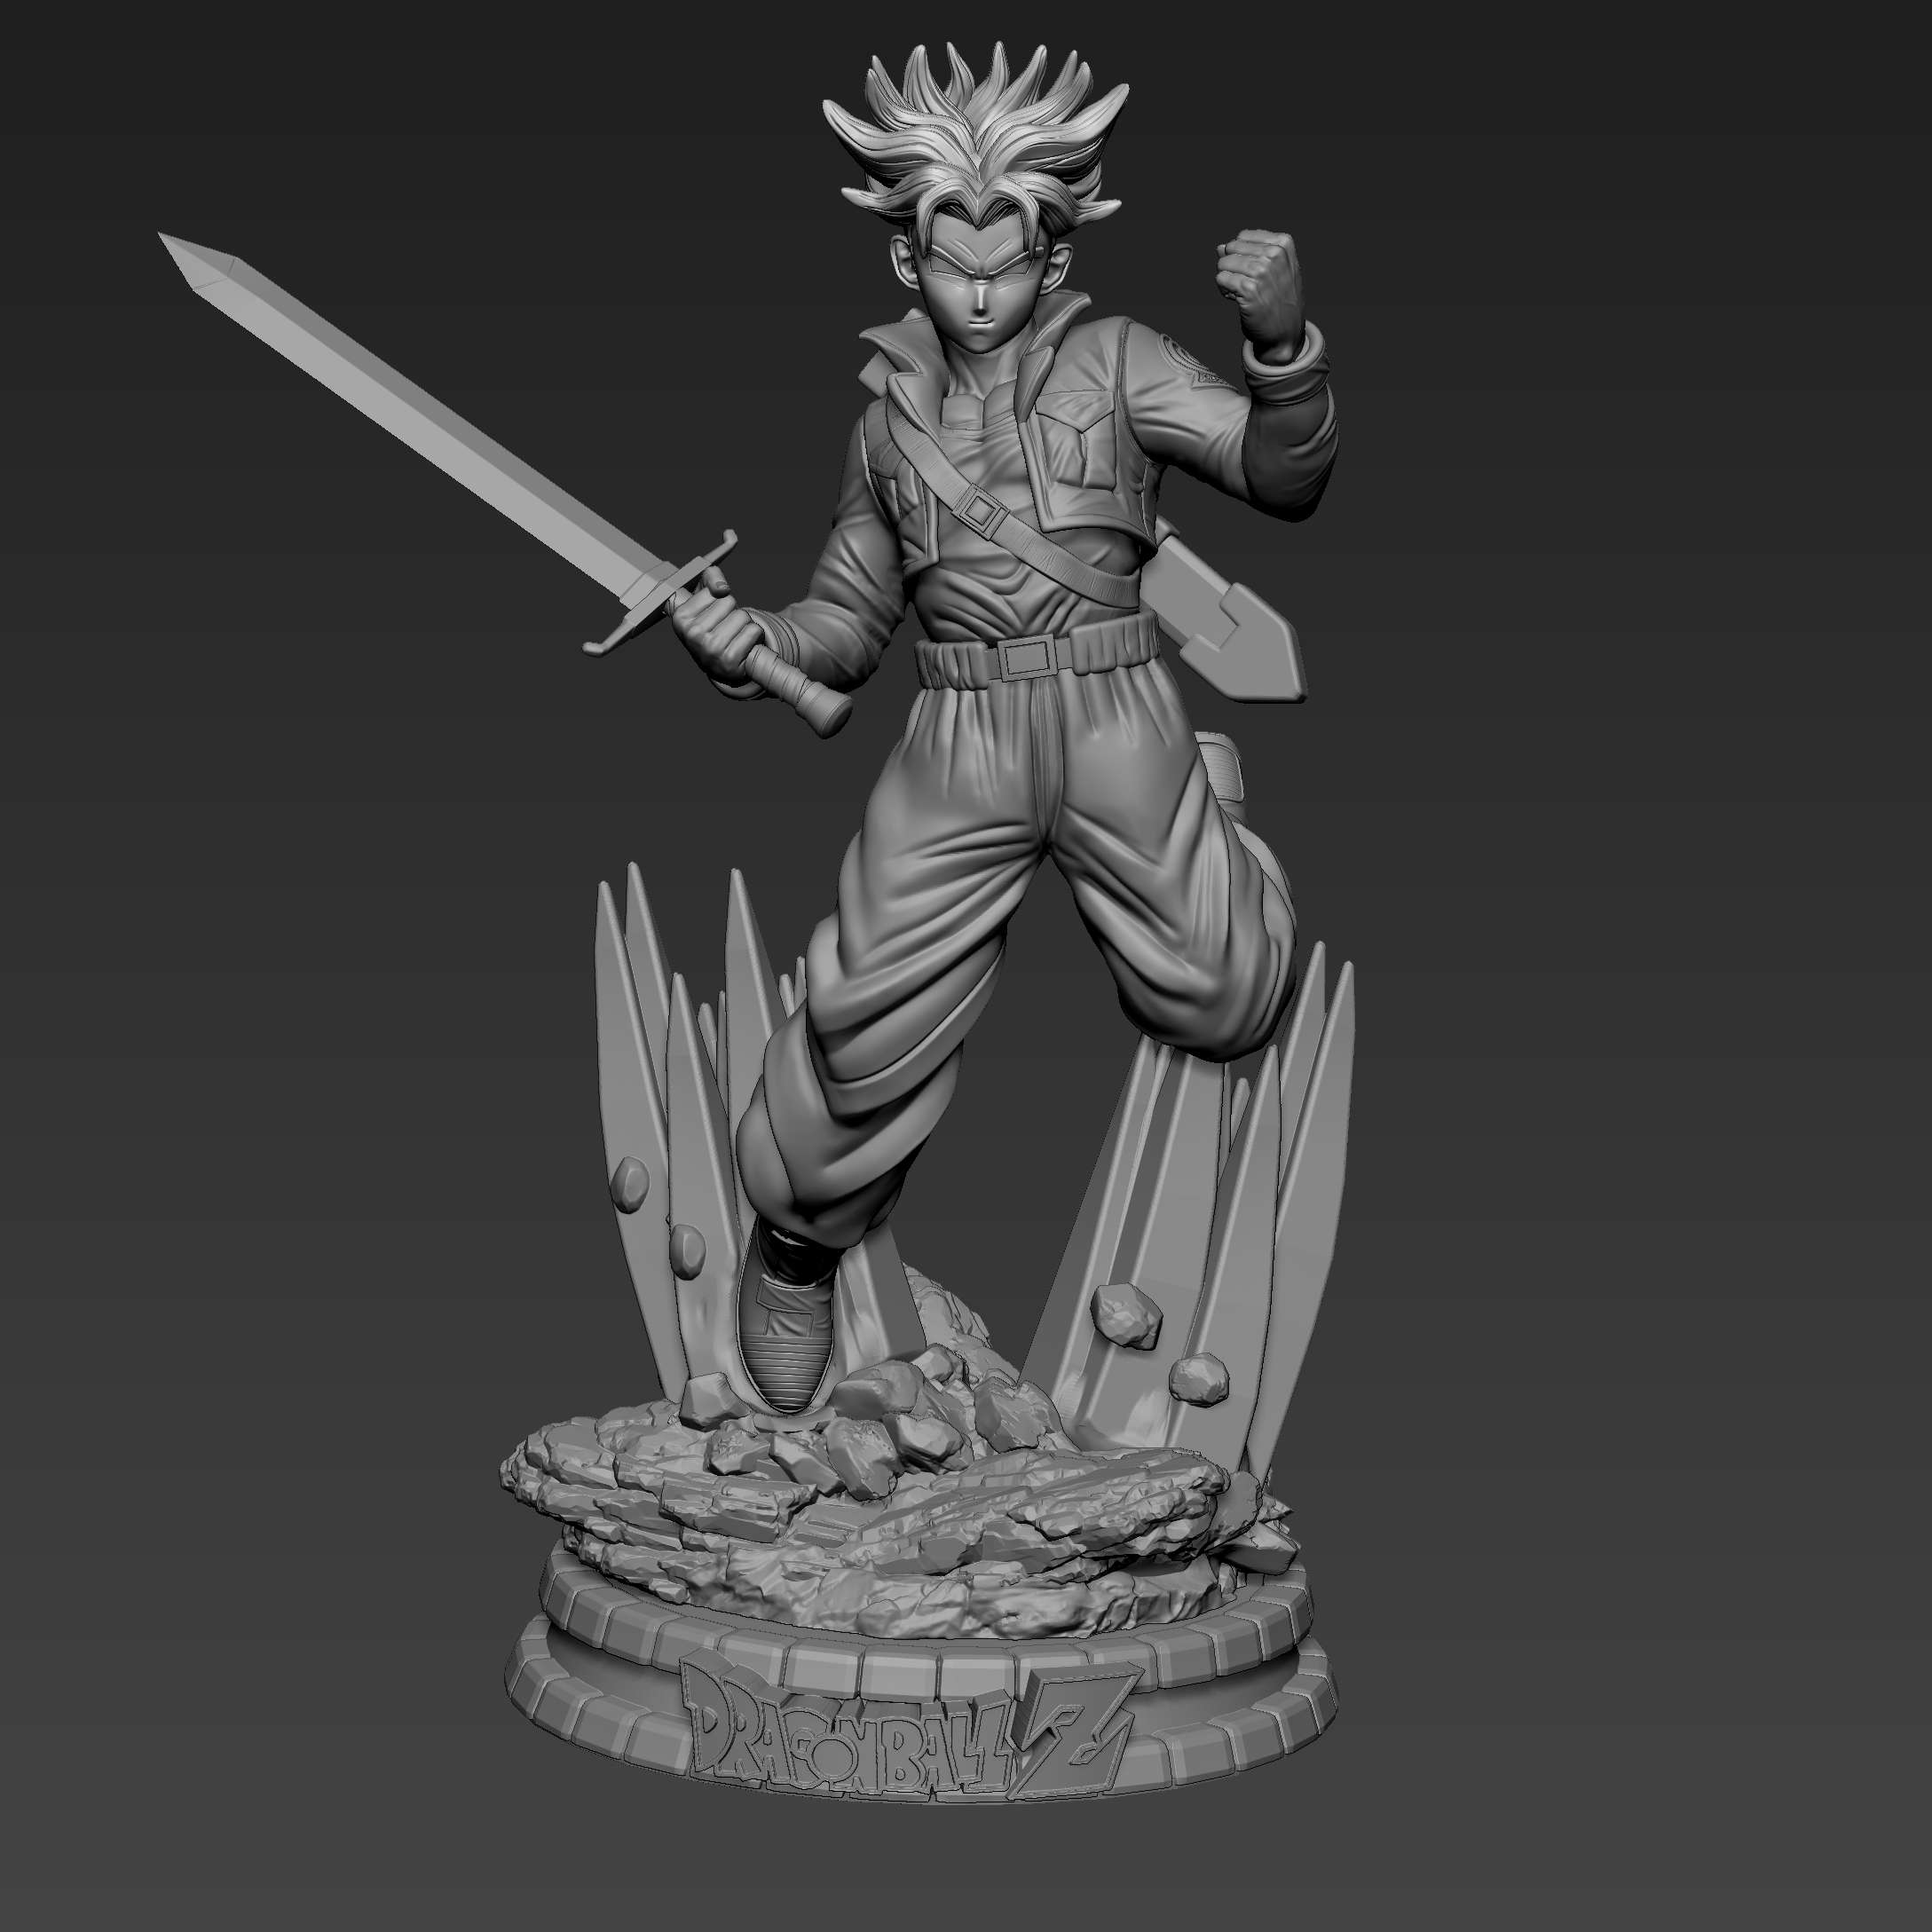 Trunks - Trunks fanart  - The best files for 3D printing in the world. Stl models divided into parts to facilitate 3D printing. All kinds of characters, decoration, cosplay, prosthetics, pieces. Quality in 3D printing. Affordable 3D models. Low cost. Collective purchases of 3D files.